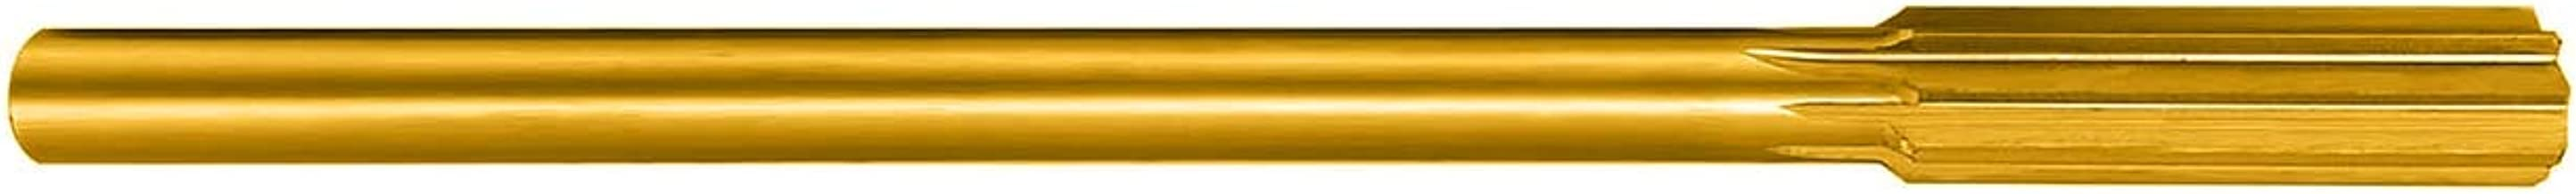 LAVALLEE & IDE M42 8% Cobalt Straight Flute Chucking Reamers - Size: 3/4